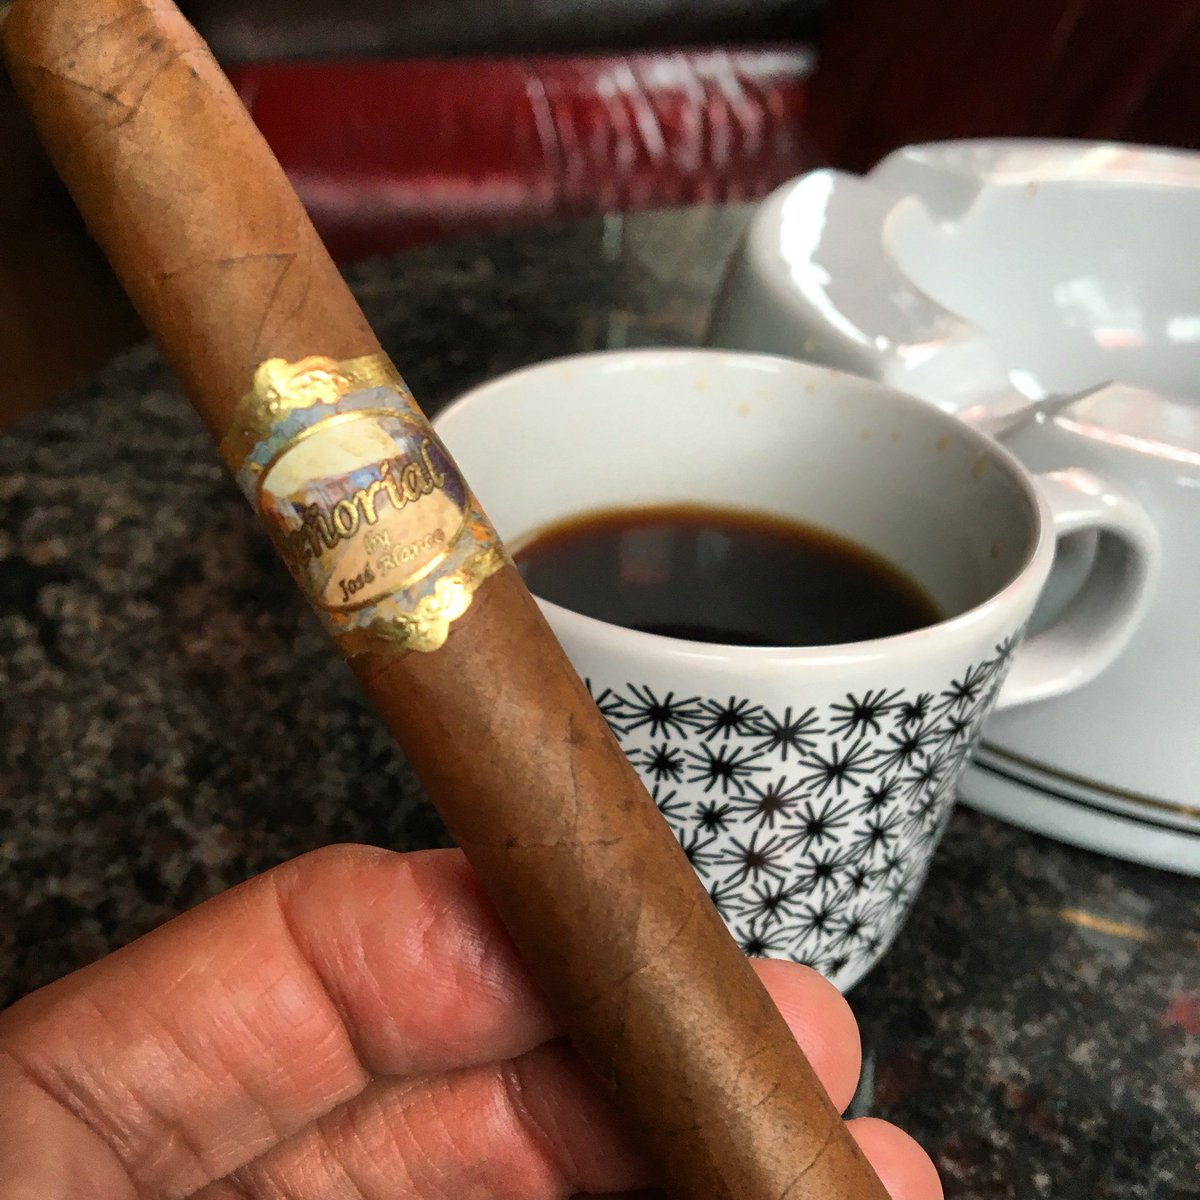 Best way to start the day Señorial Lancero & Cafe have a great day guys